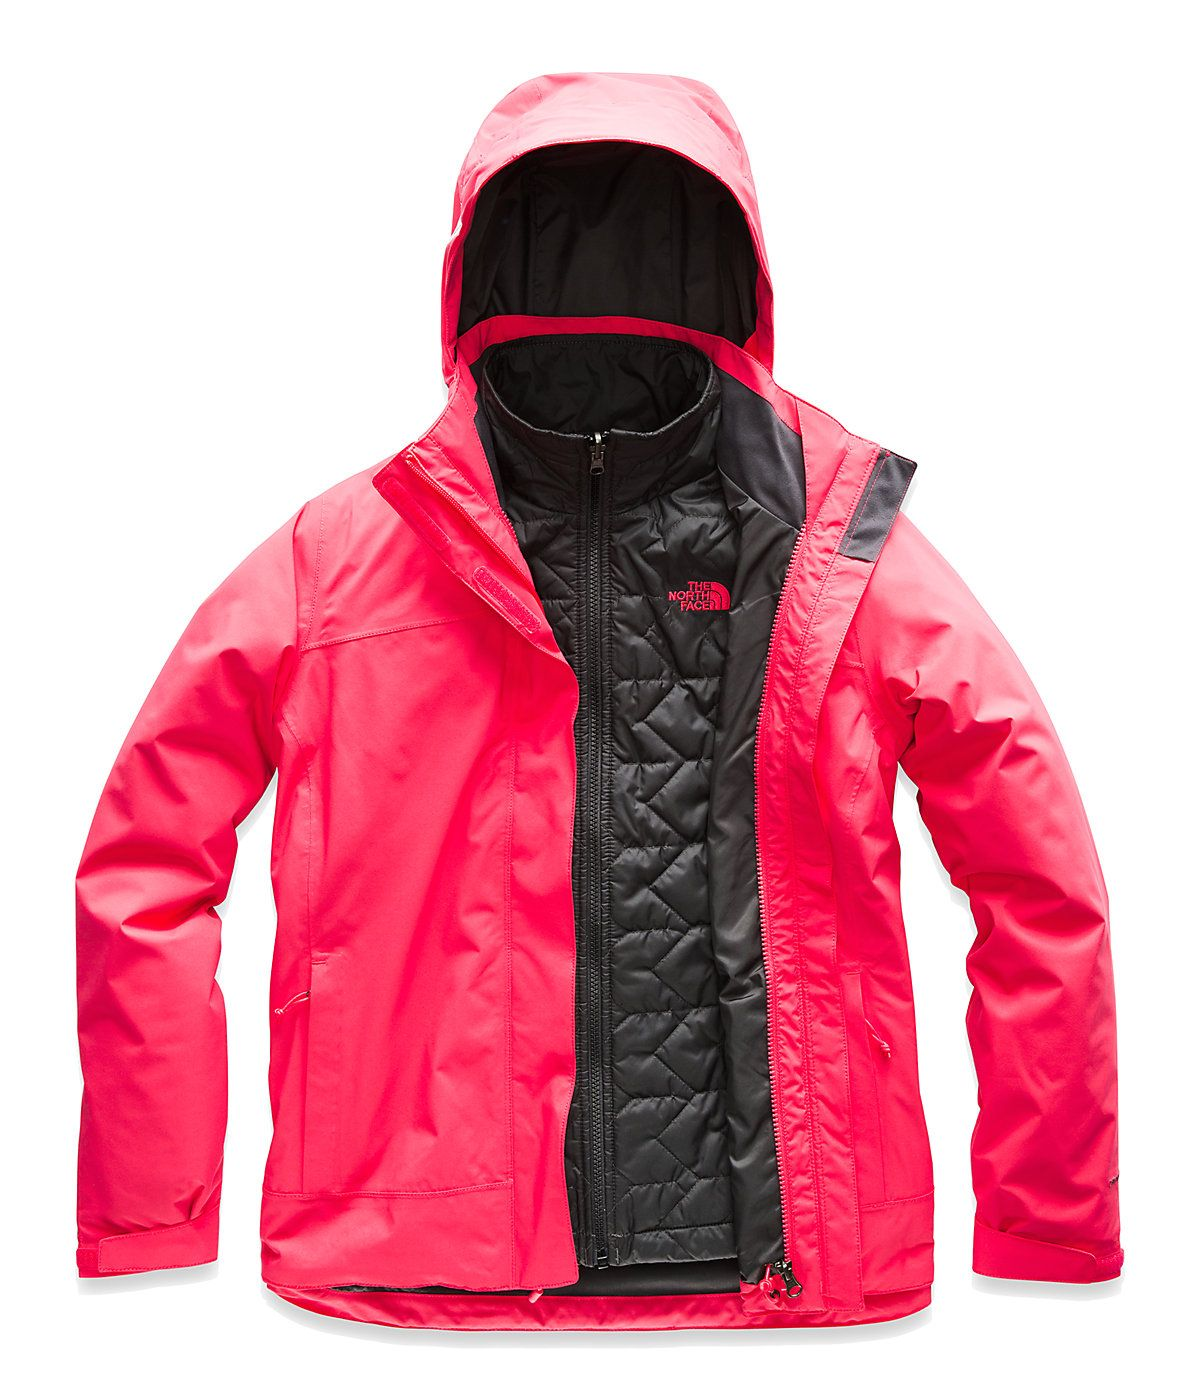 Women S Carto Triclimate Jacket The North Face Triclimate Jacket Jackets North Face Women [ 1396 x 1200 Pixel ]